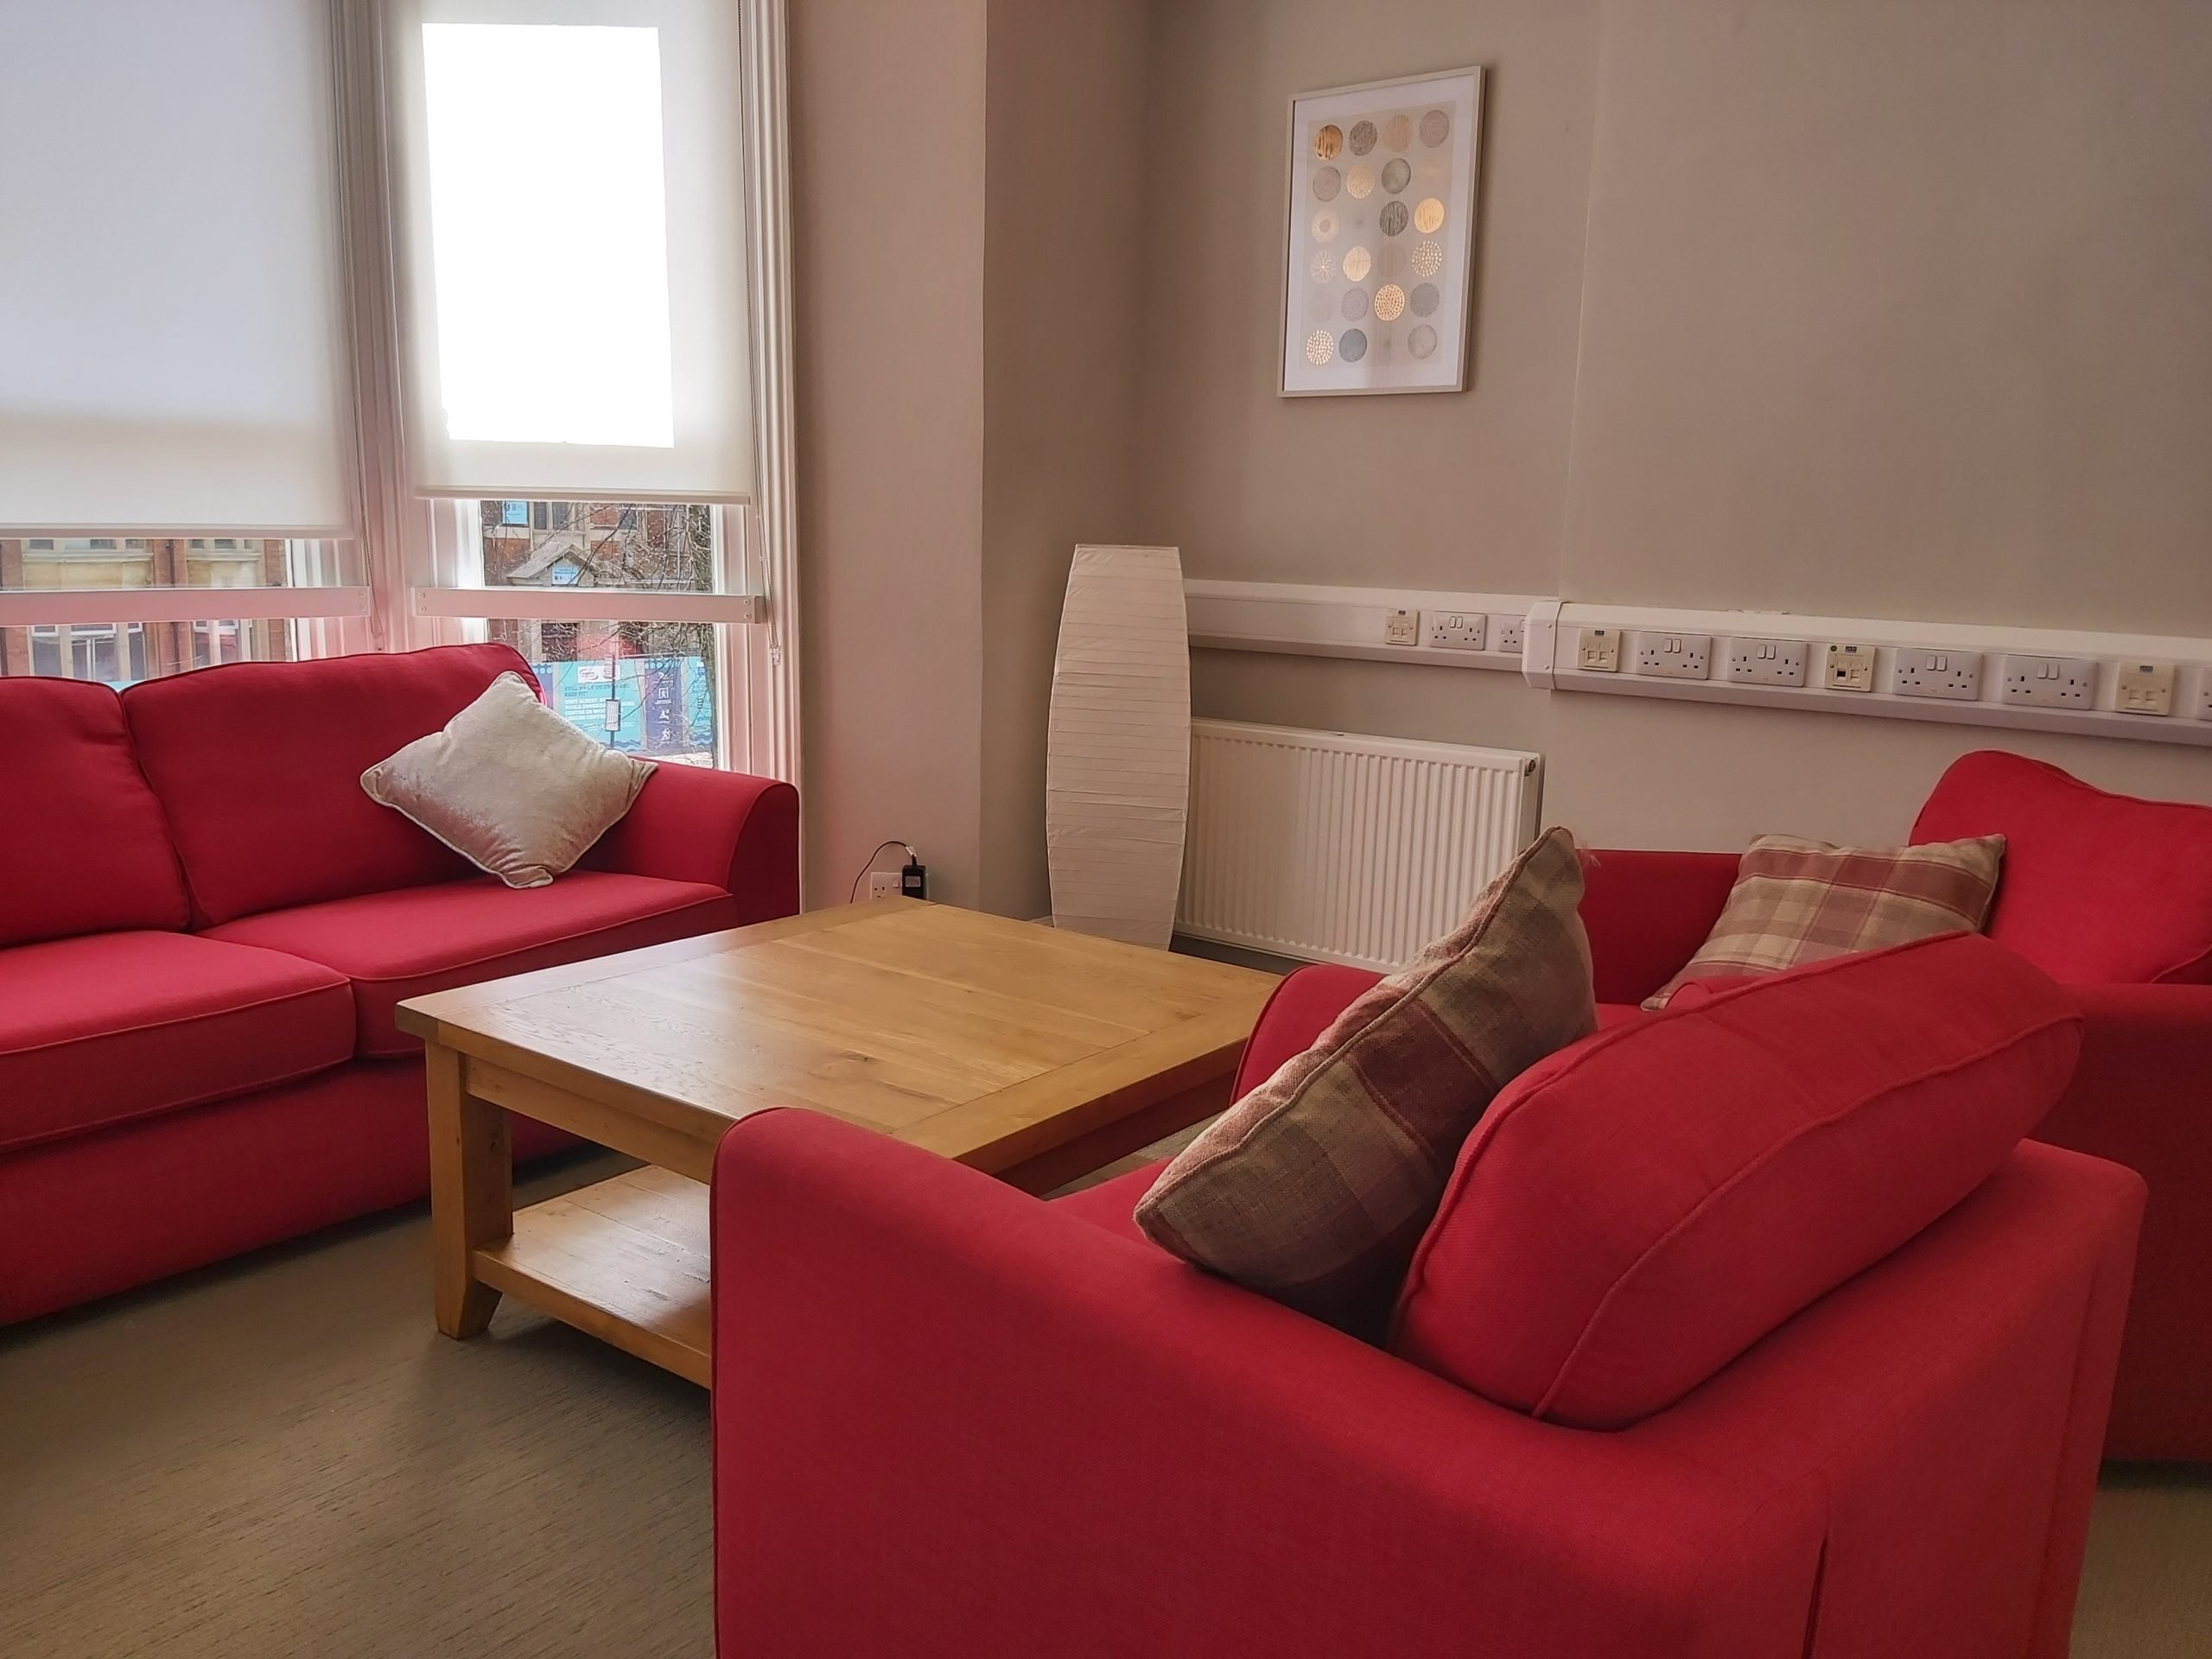 Therapy room hire in Hull and East Yorkshire